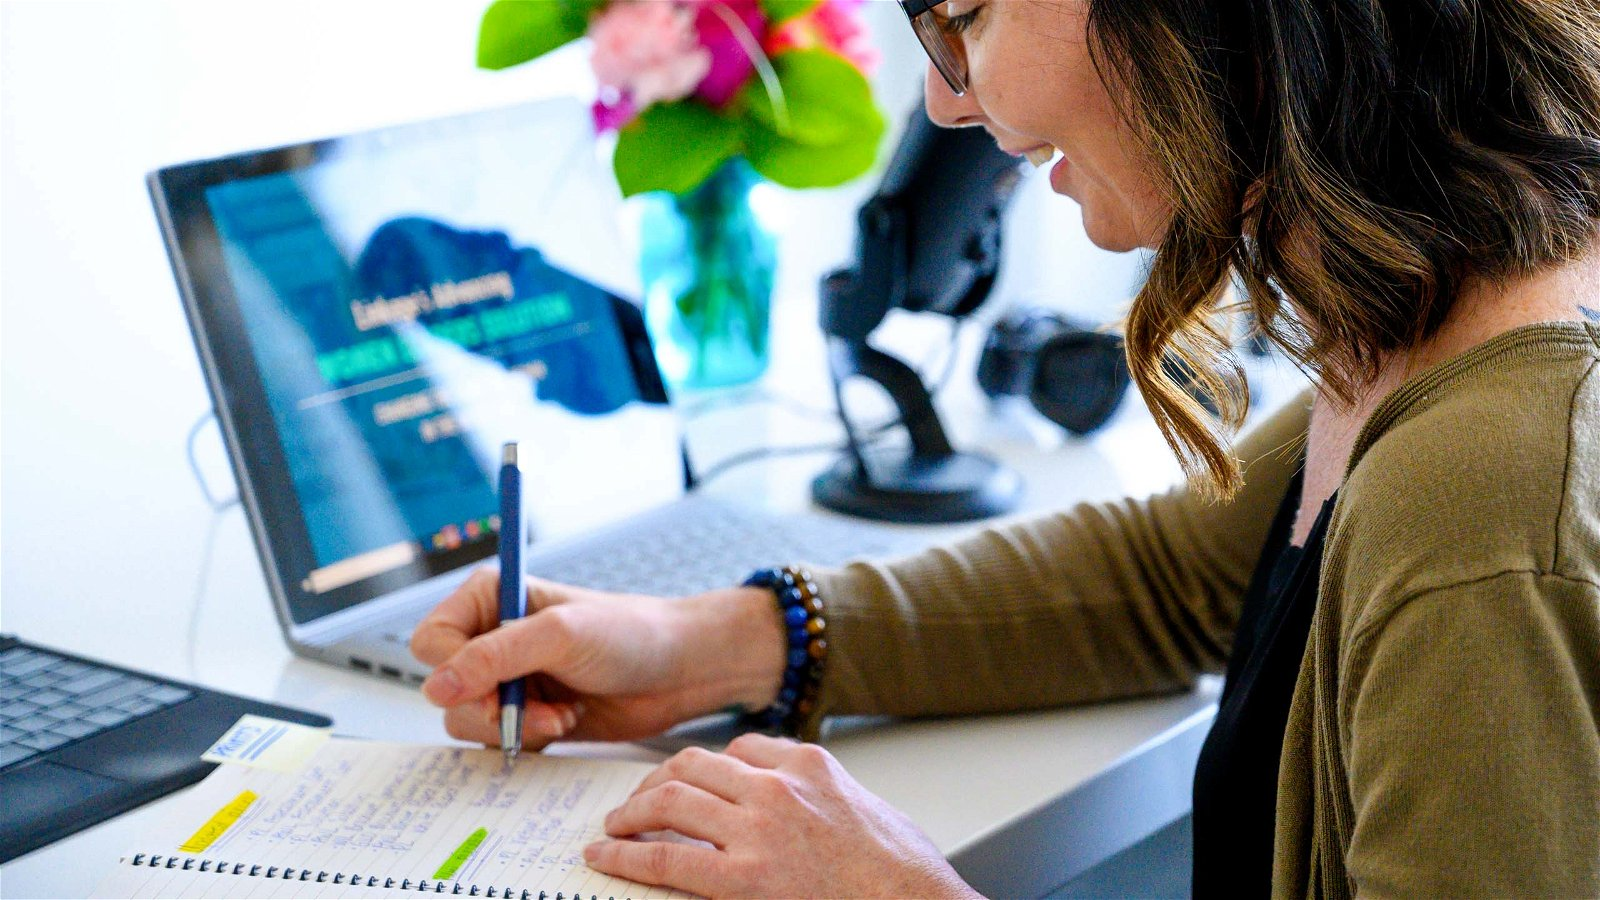 Woman writes in notebook at desk